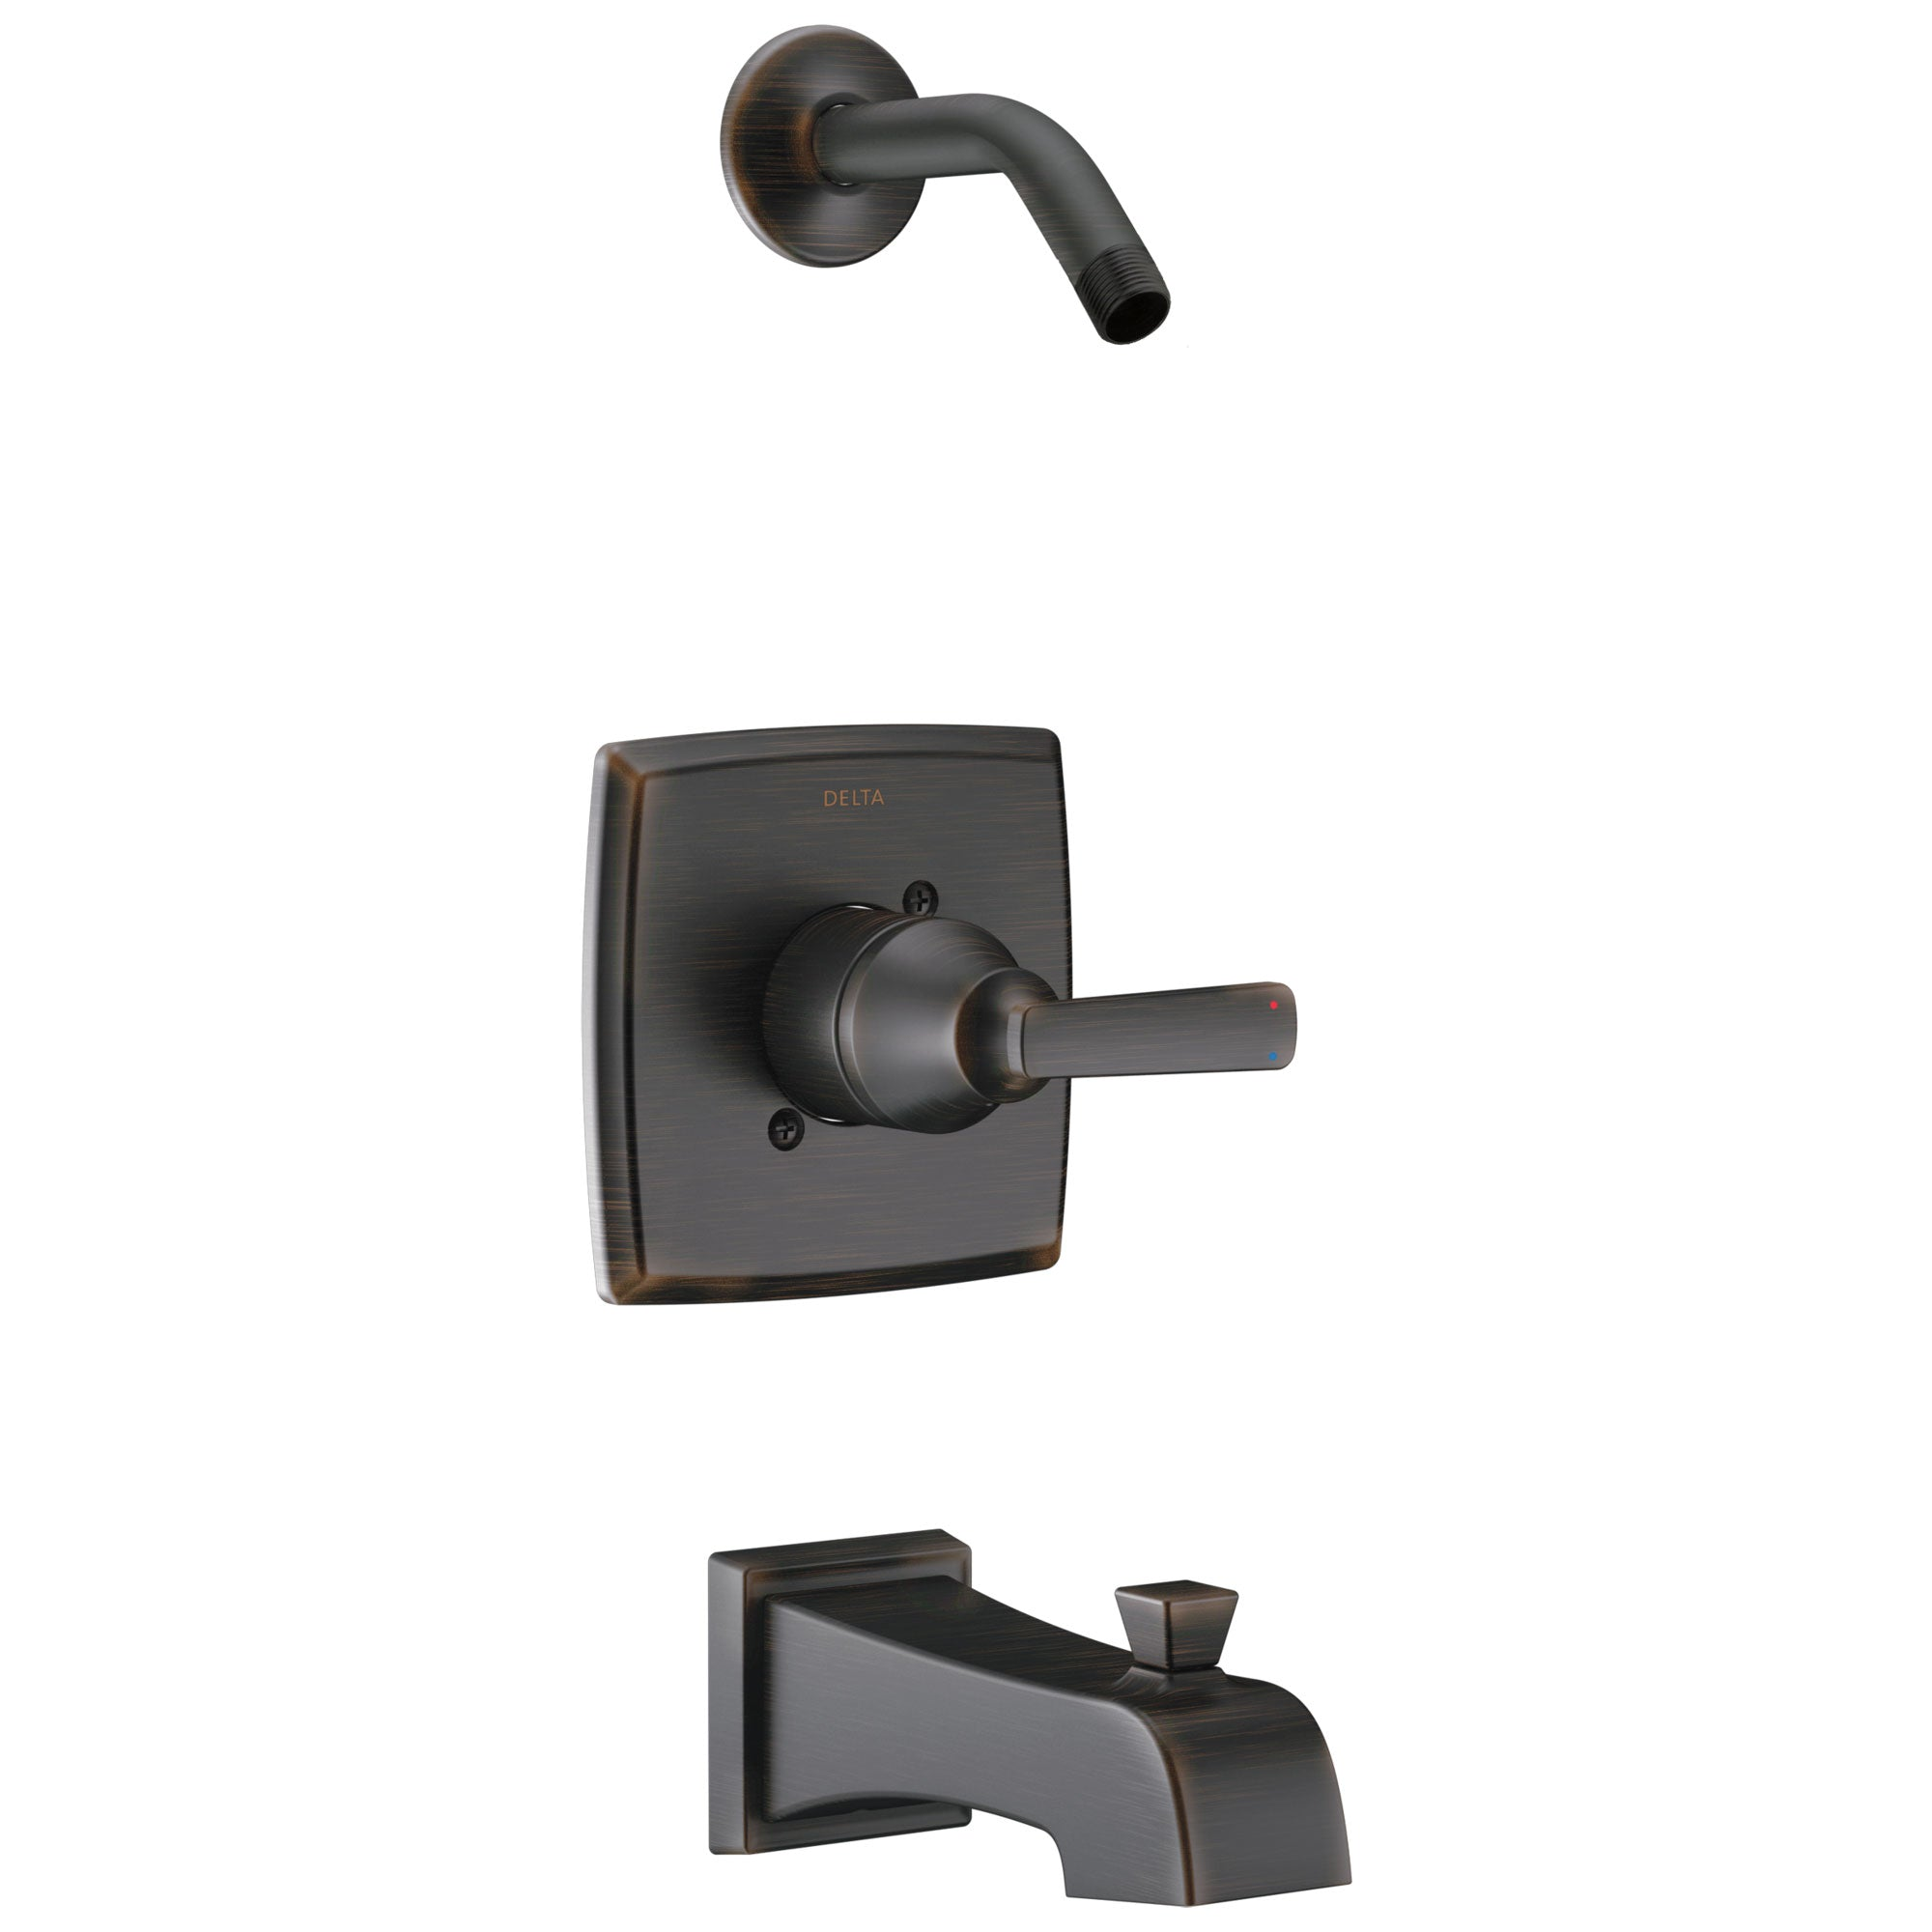 Delta Ashlyn Collection Venetian Bronze Monitor 14 Stylish Tub & Shower Combination Faucet Trim - Less Showerhead Includes Valve with Stops D2390V